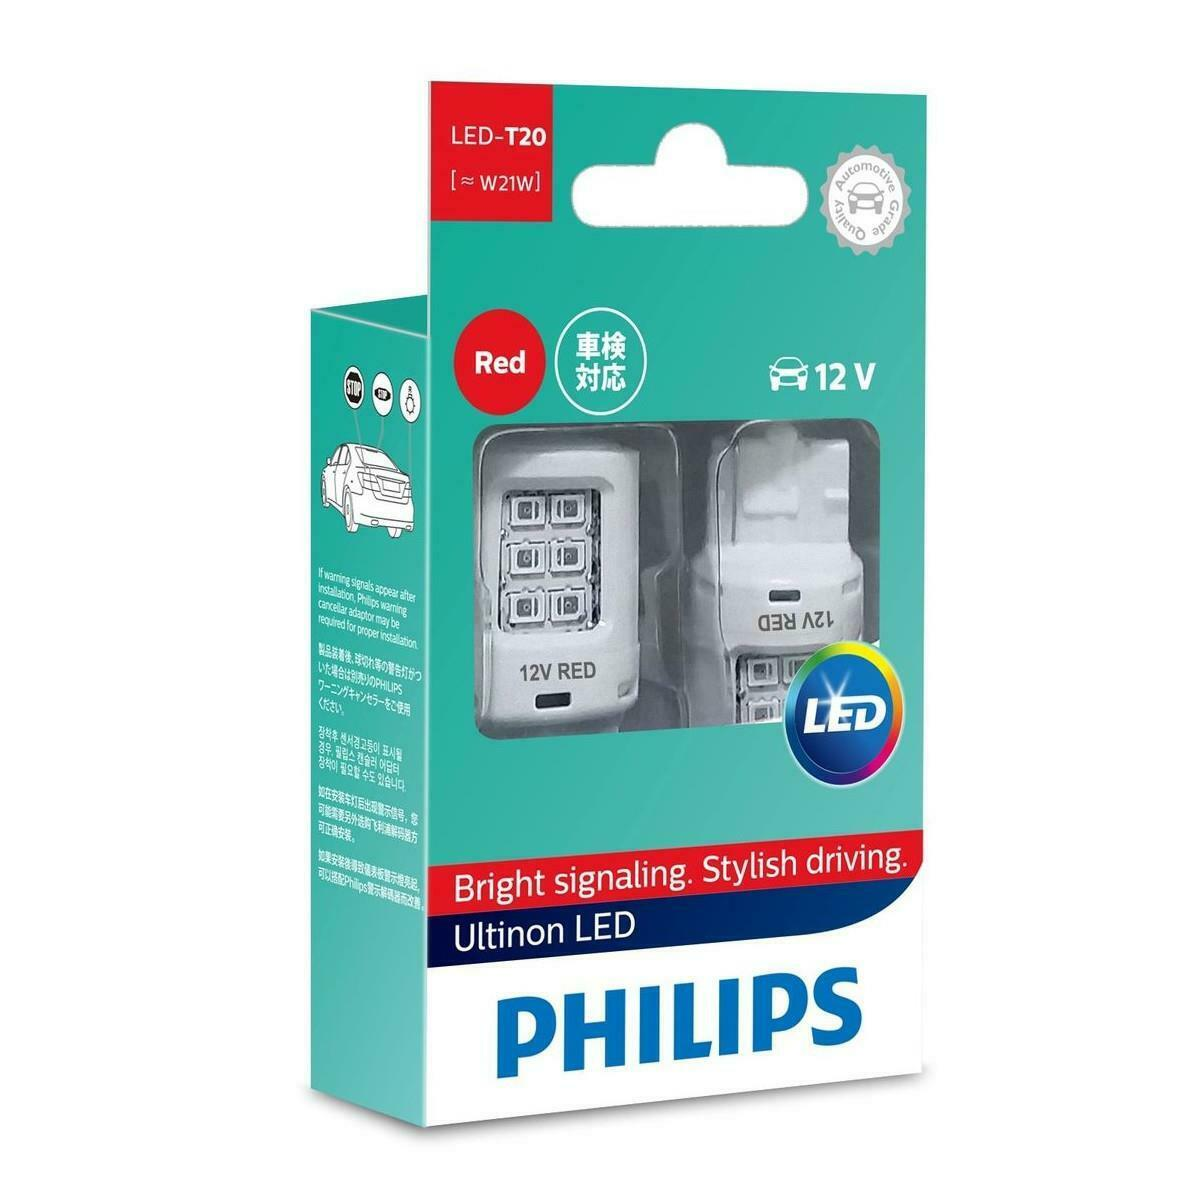 Philips 12838REDX2 Ultinon RED LED W21W …